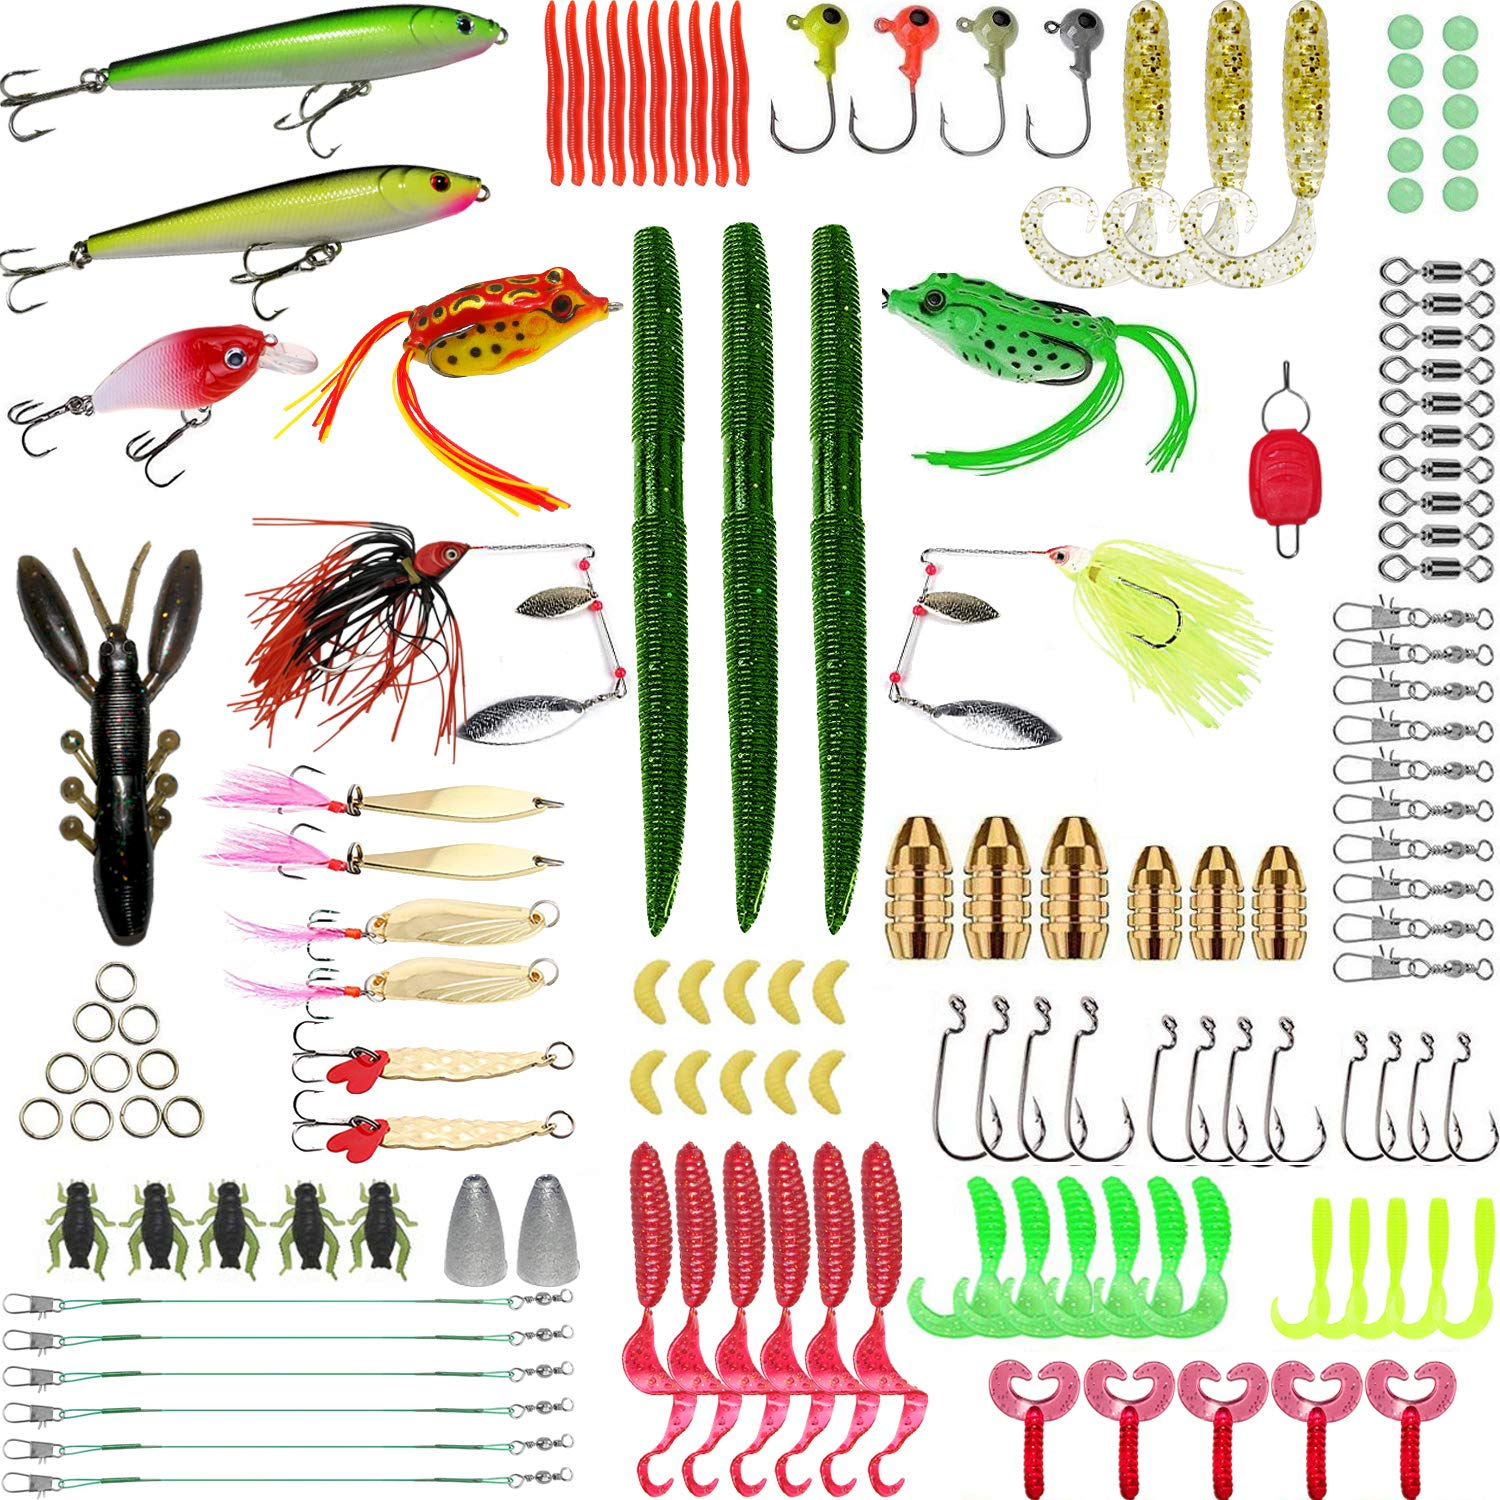 SHXH 137 Pcs Fishing Lures Kit,Top-Water Lures Tackle Box,Baits Tackle Including Crank-baits Spinner-baits Plastic Worms Jigs and More Fishing Gear by SHXH